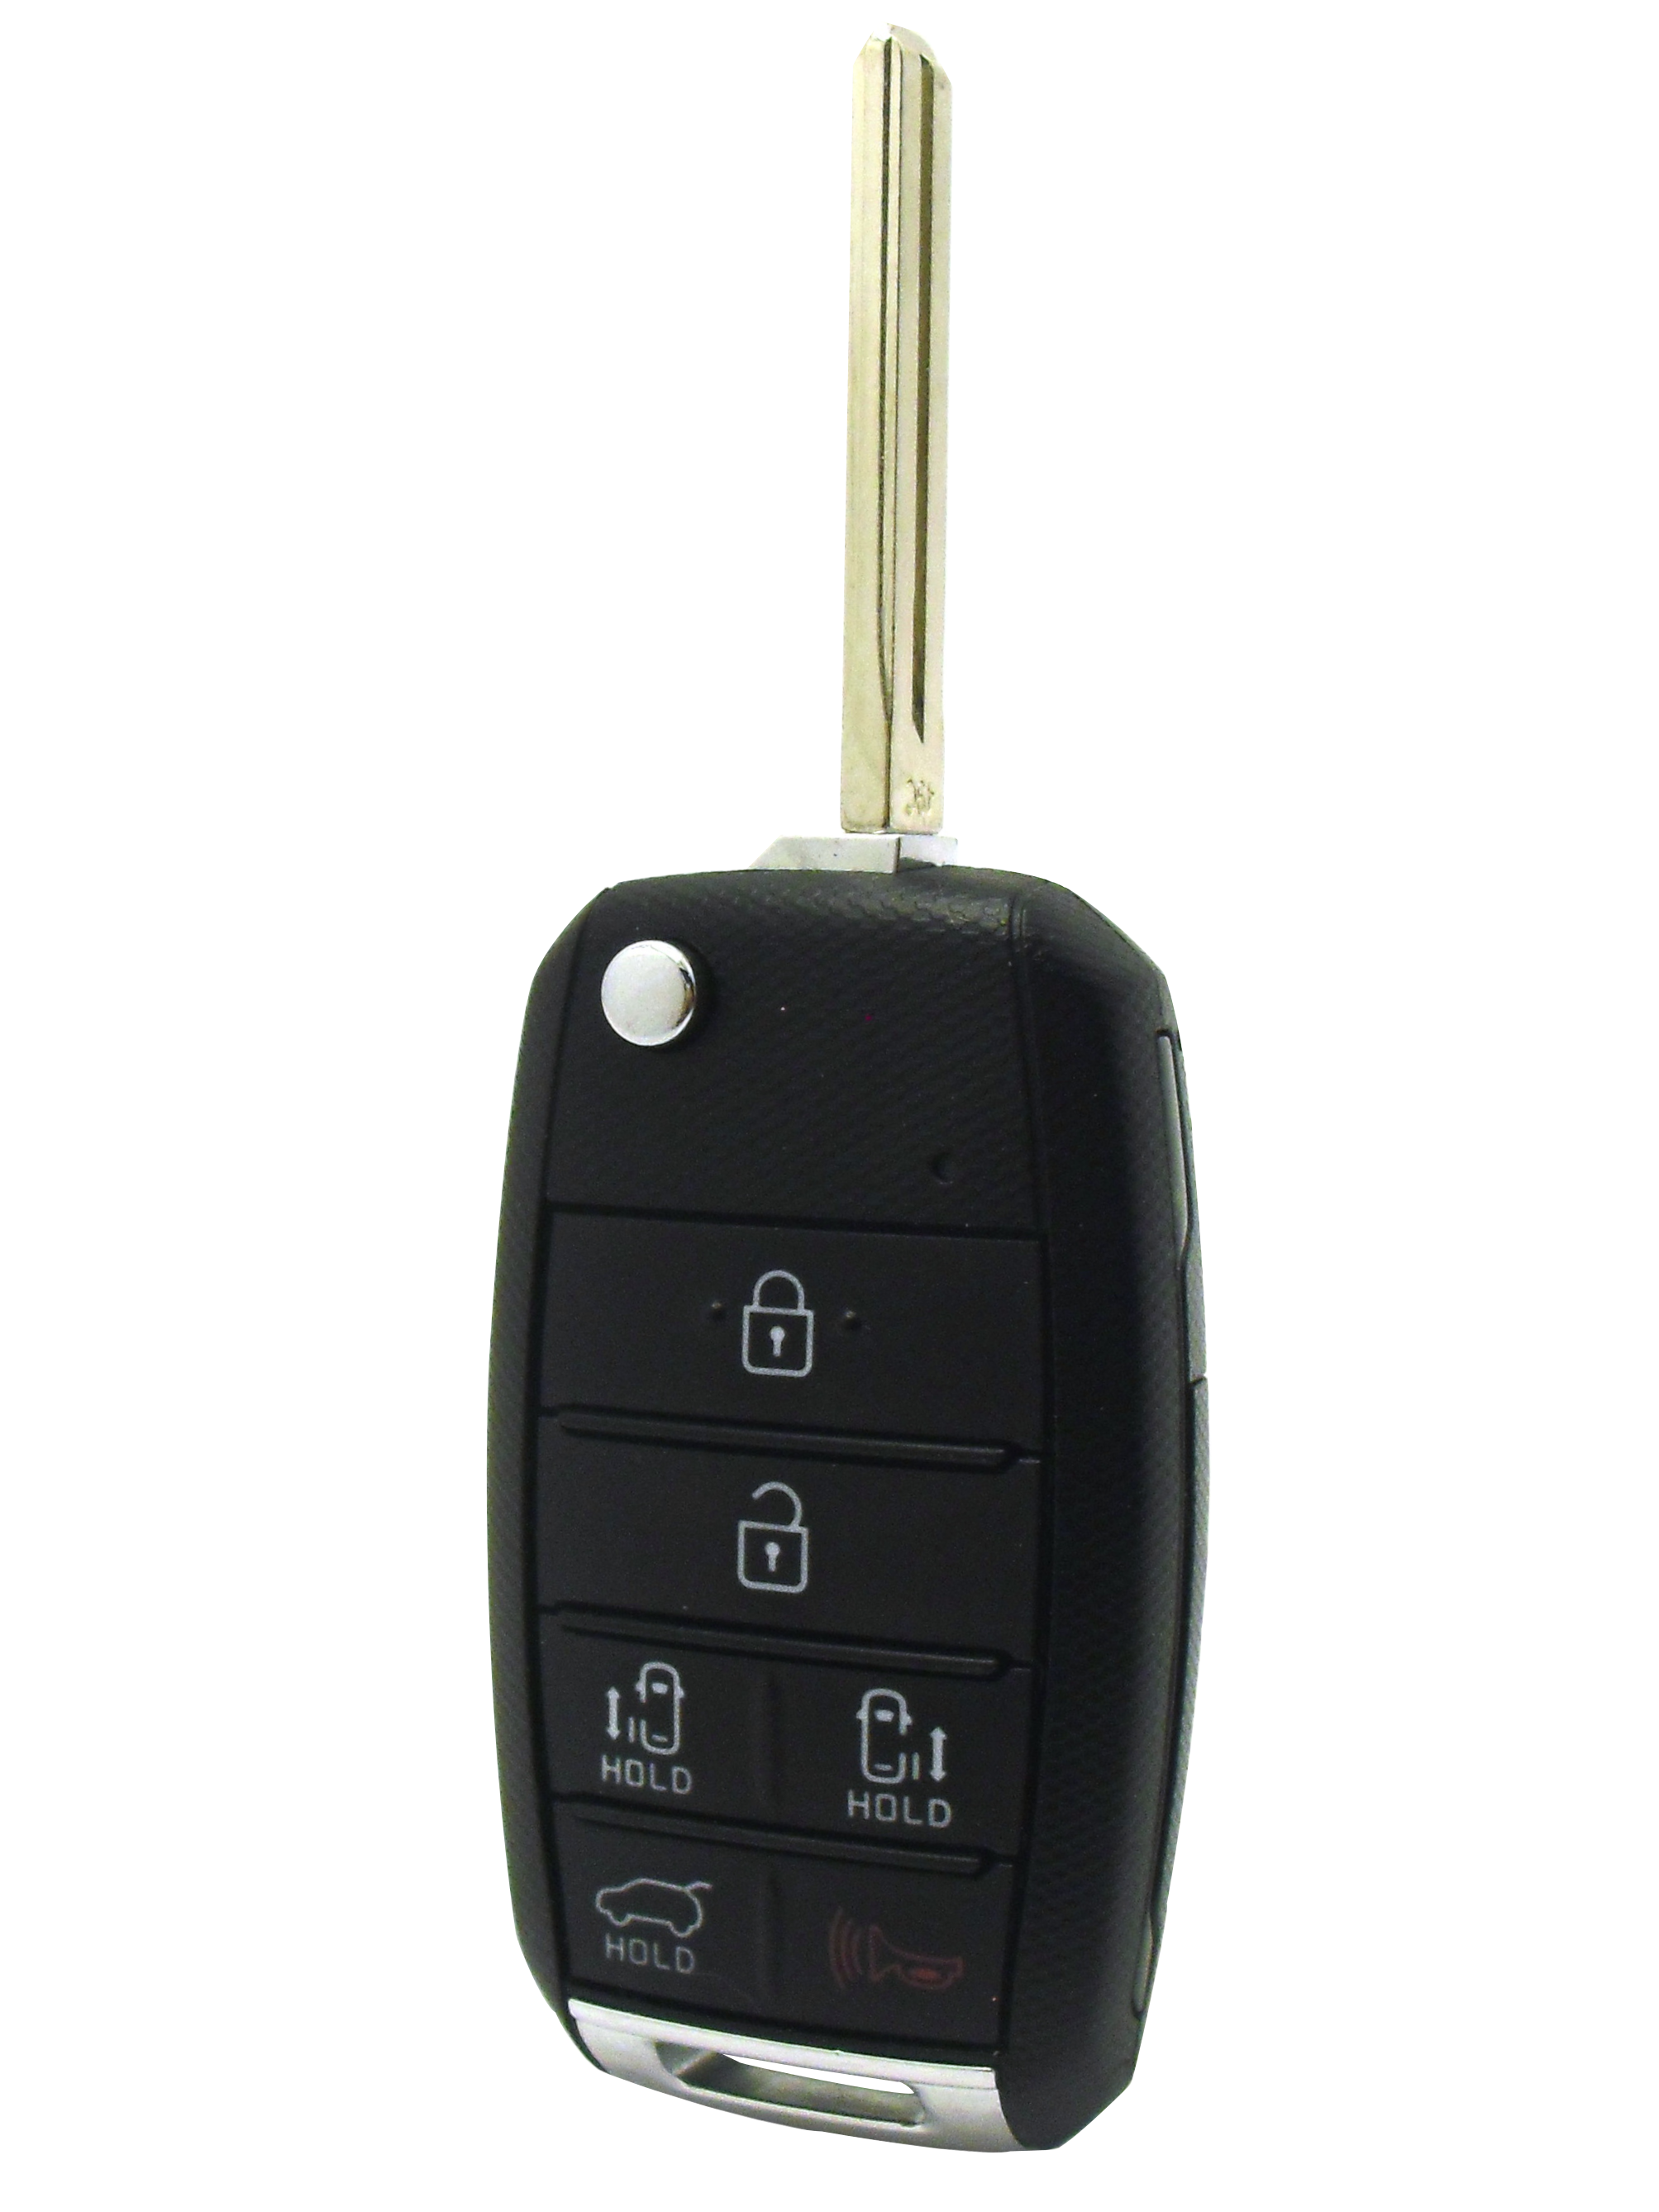 Keyless Entry and Flip key - 6 Button